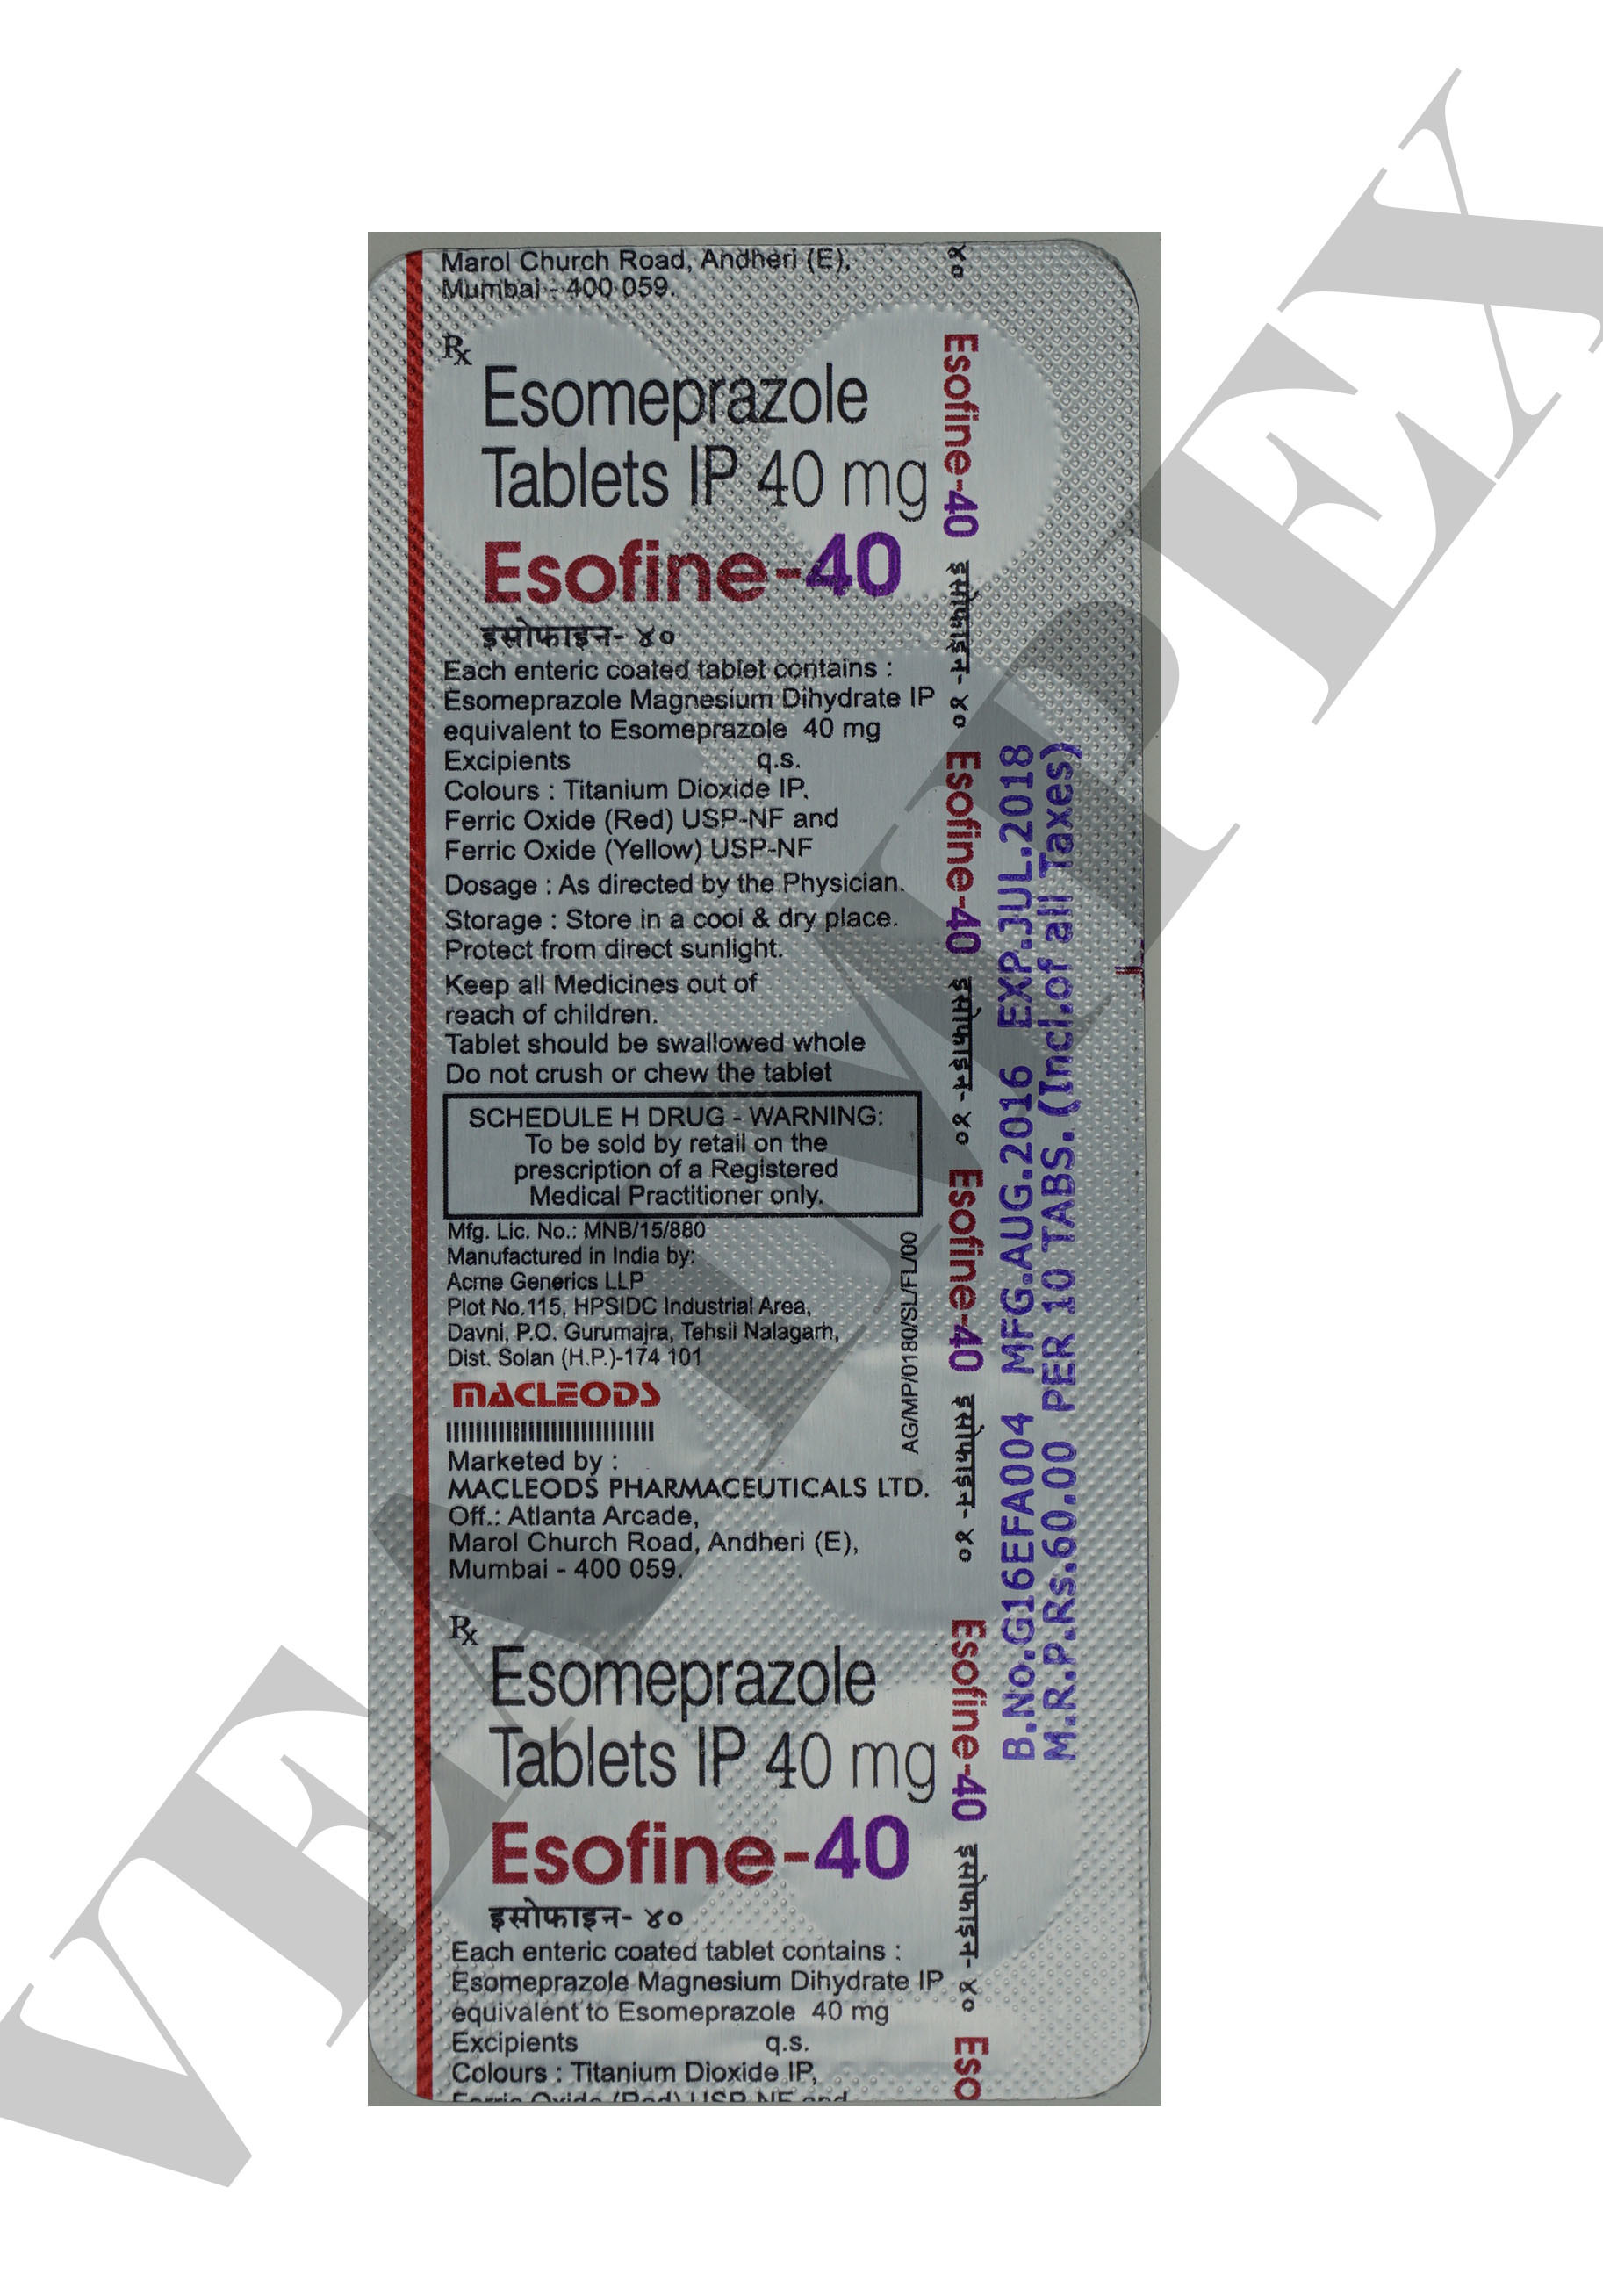 Esofine 40 mg Tablets